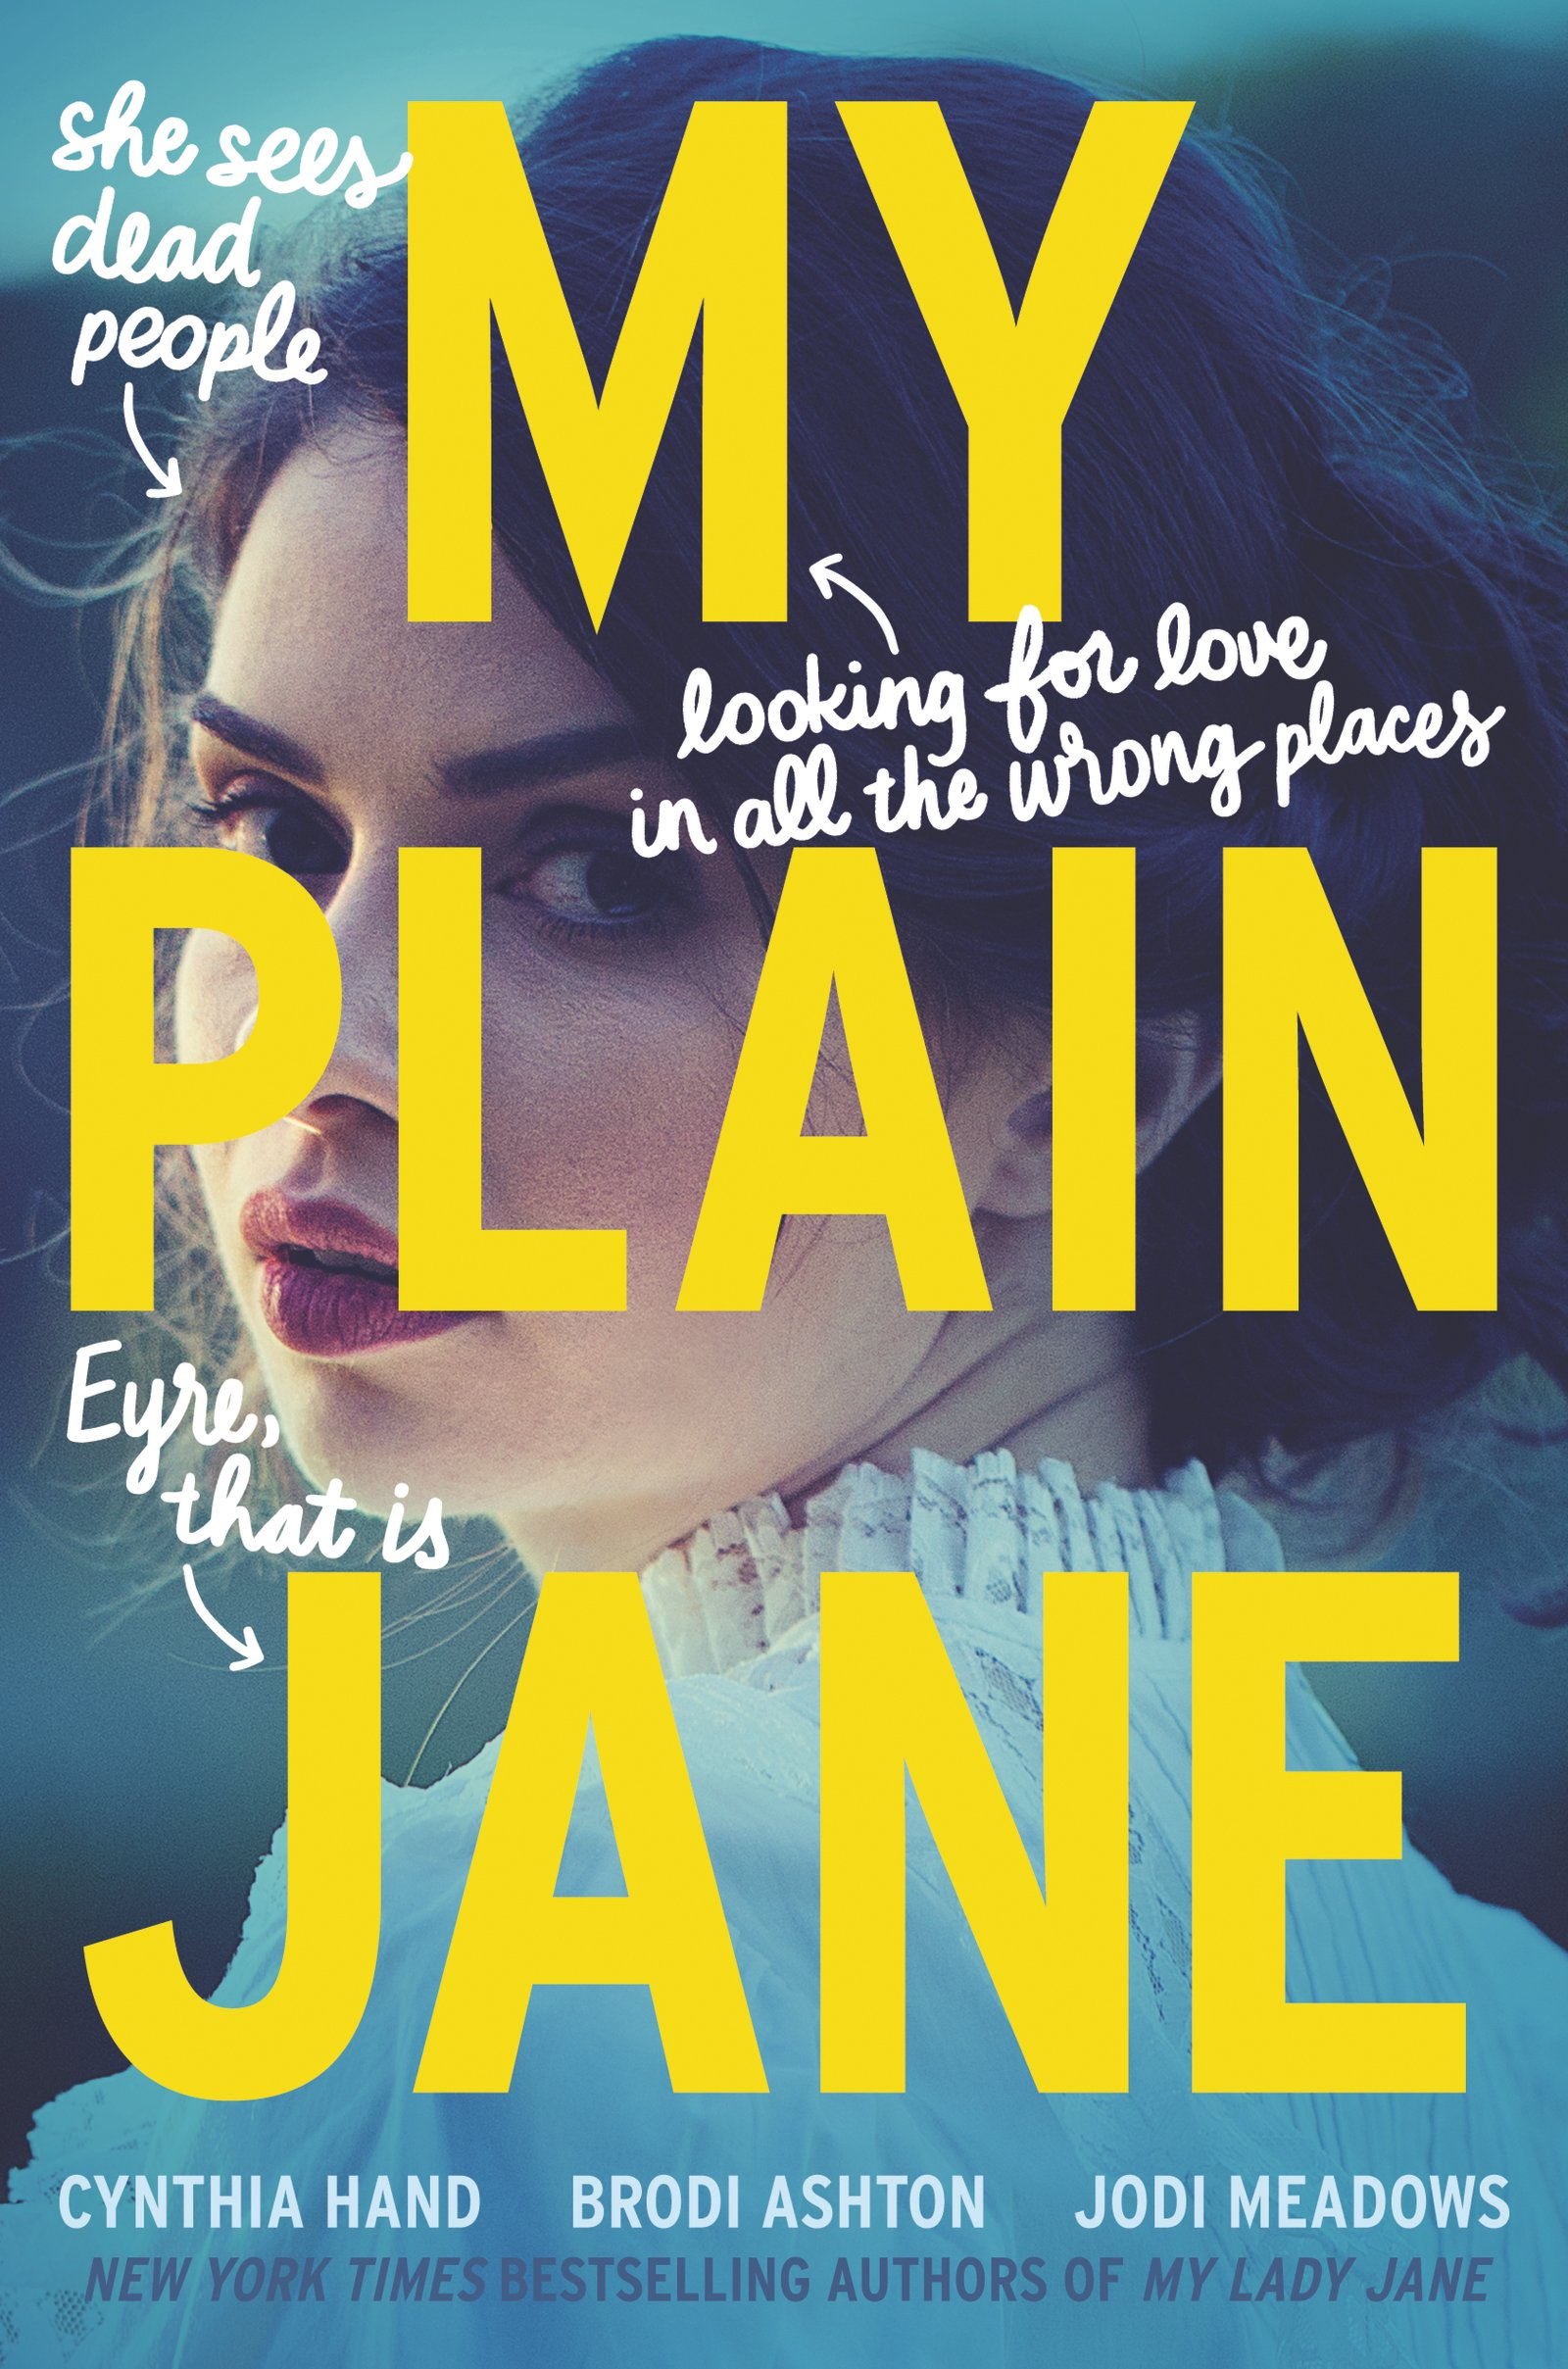 Image result for My Plain Jane by Cynthia hand, Brodi Ashton, and Jodi Meadows